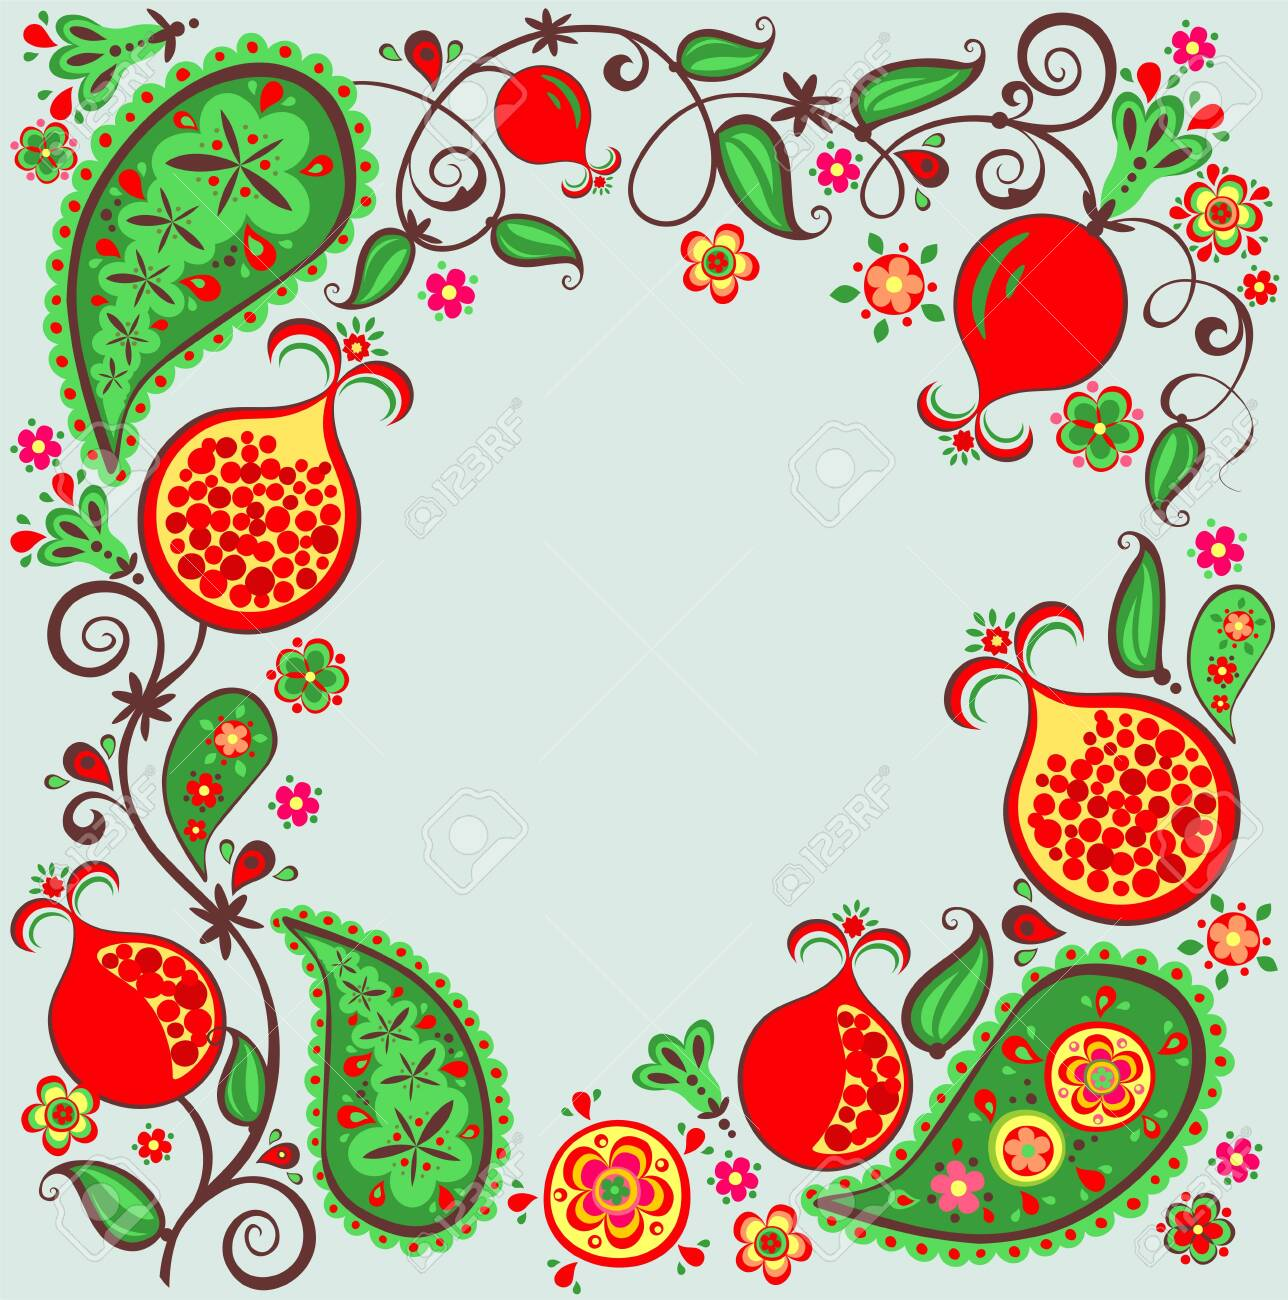 Pomegranate Tree Fruit Flower And Paisly Royalty Free Cliparts Vectors And Stock Illustration Image 124401422